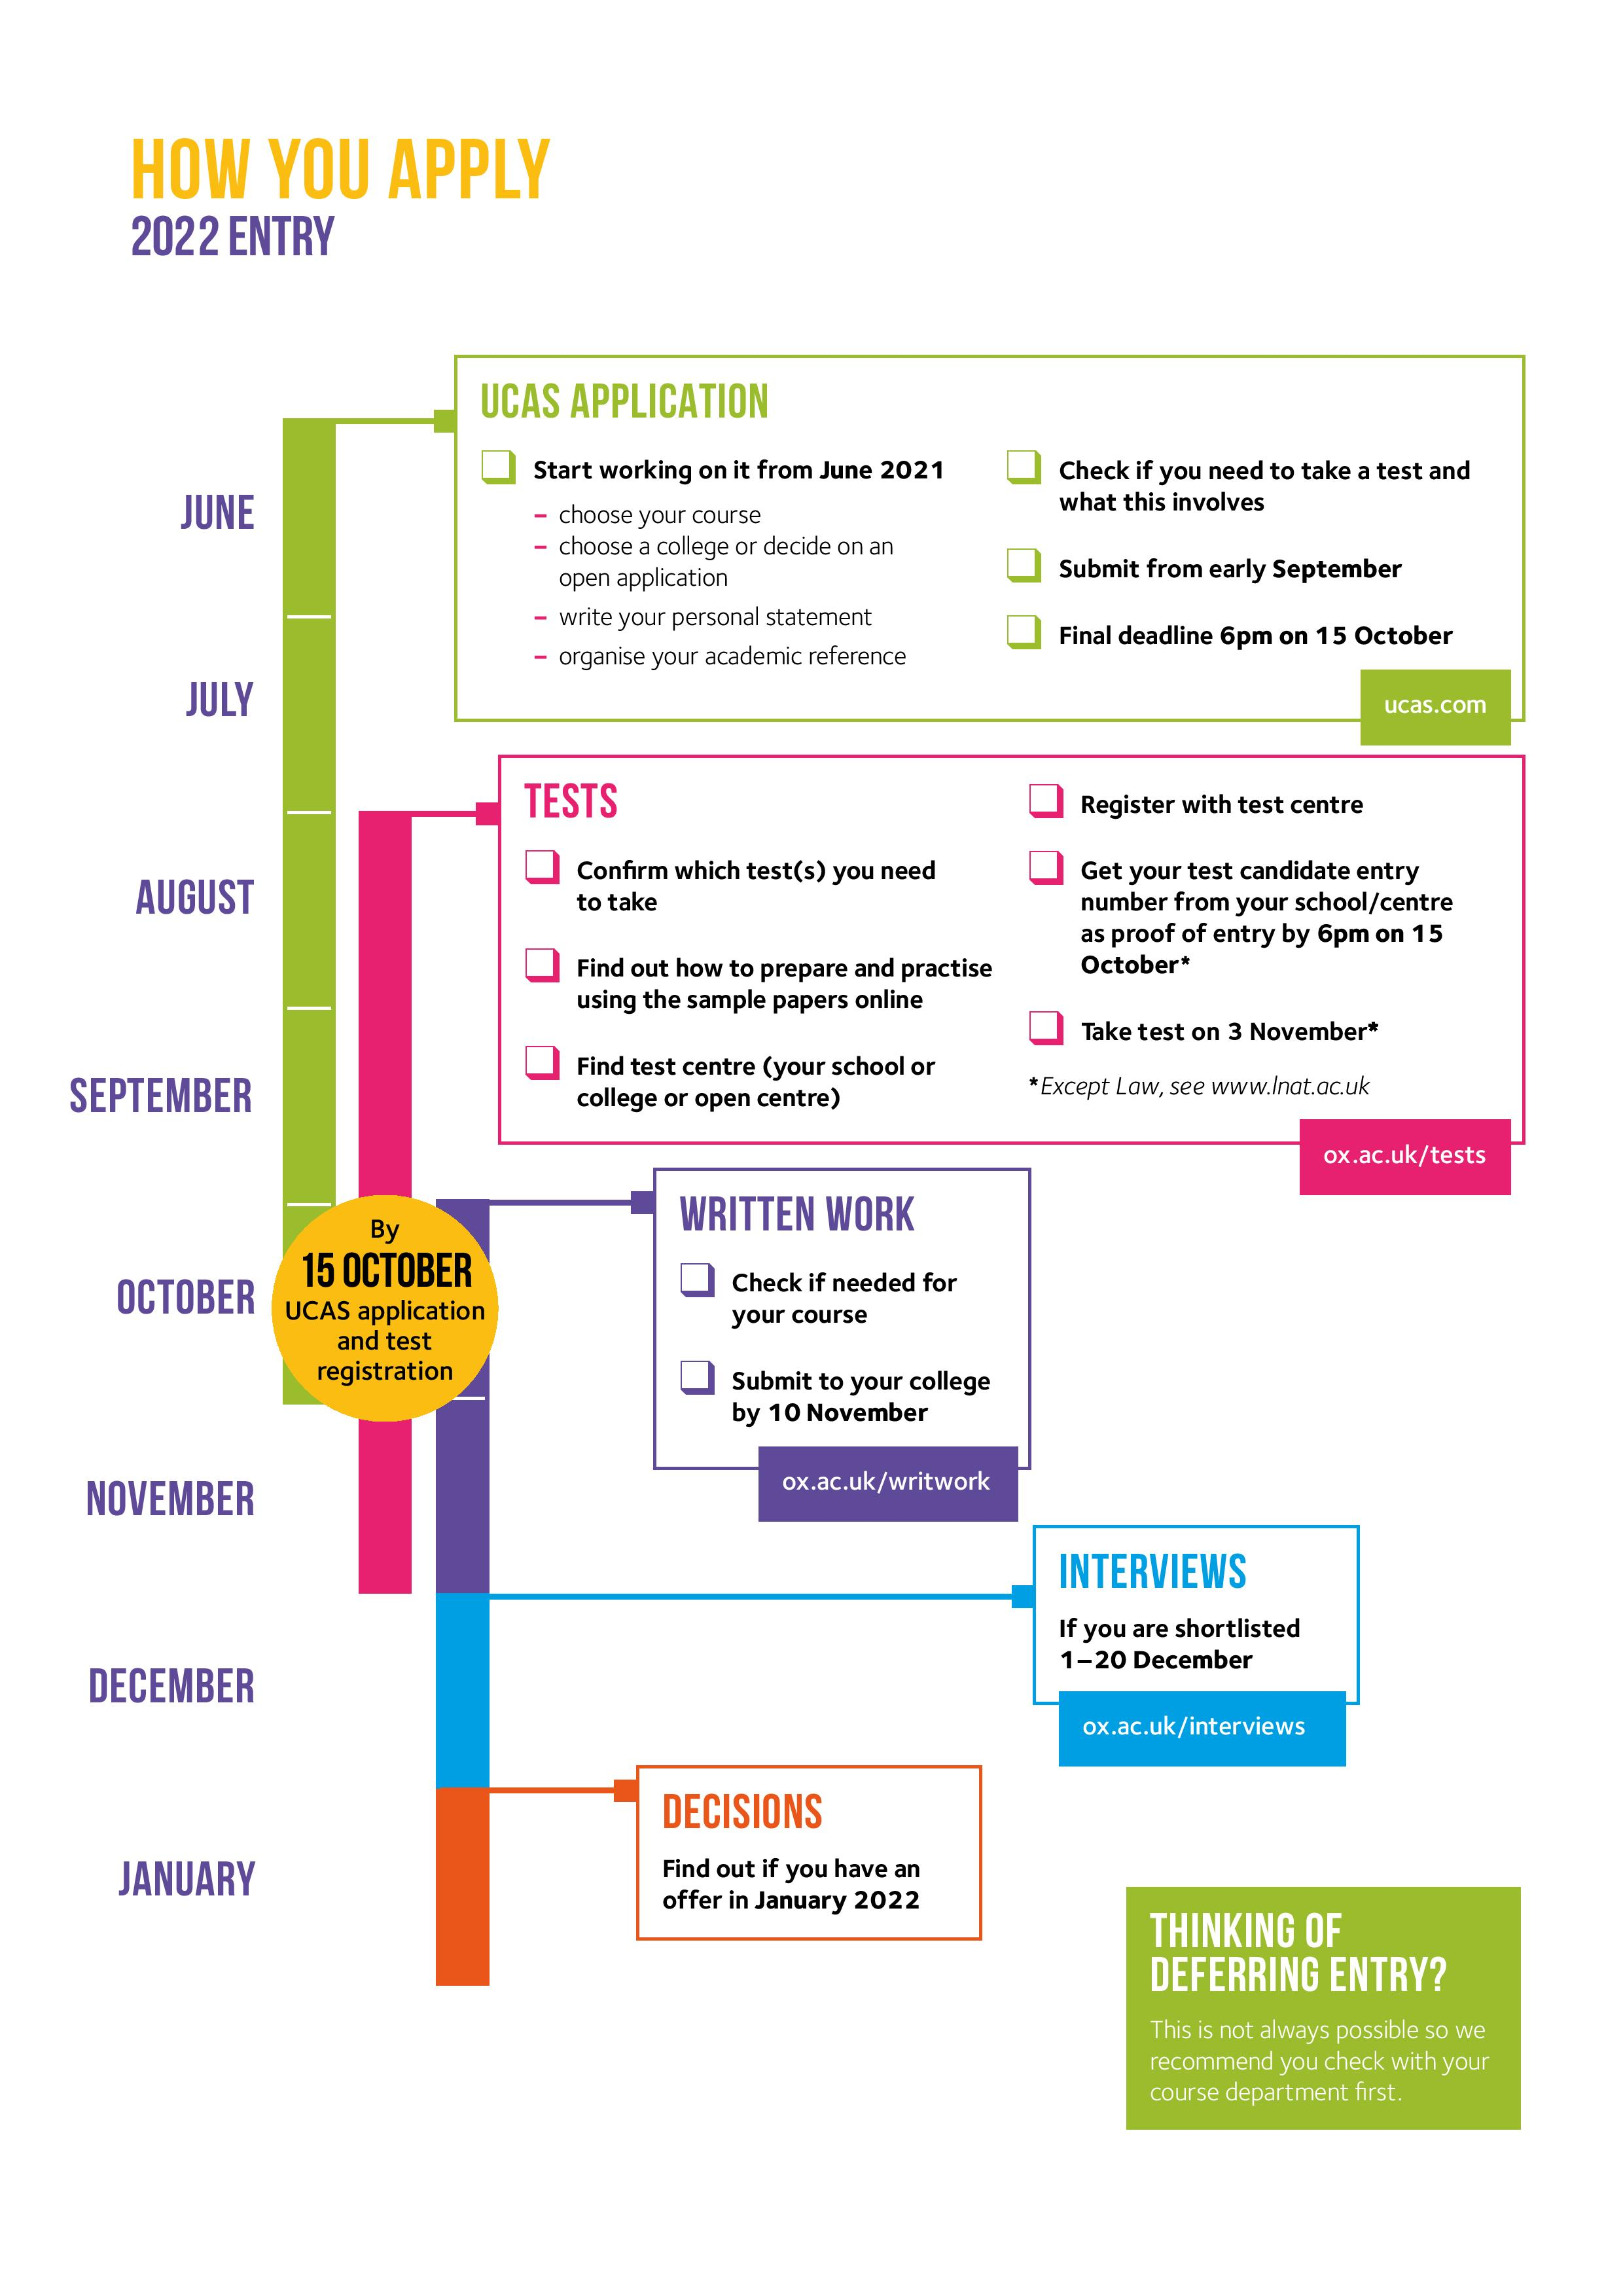 A timeline showing each step of the admissions process from June to January